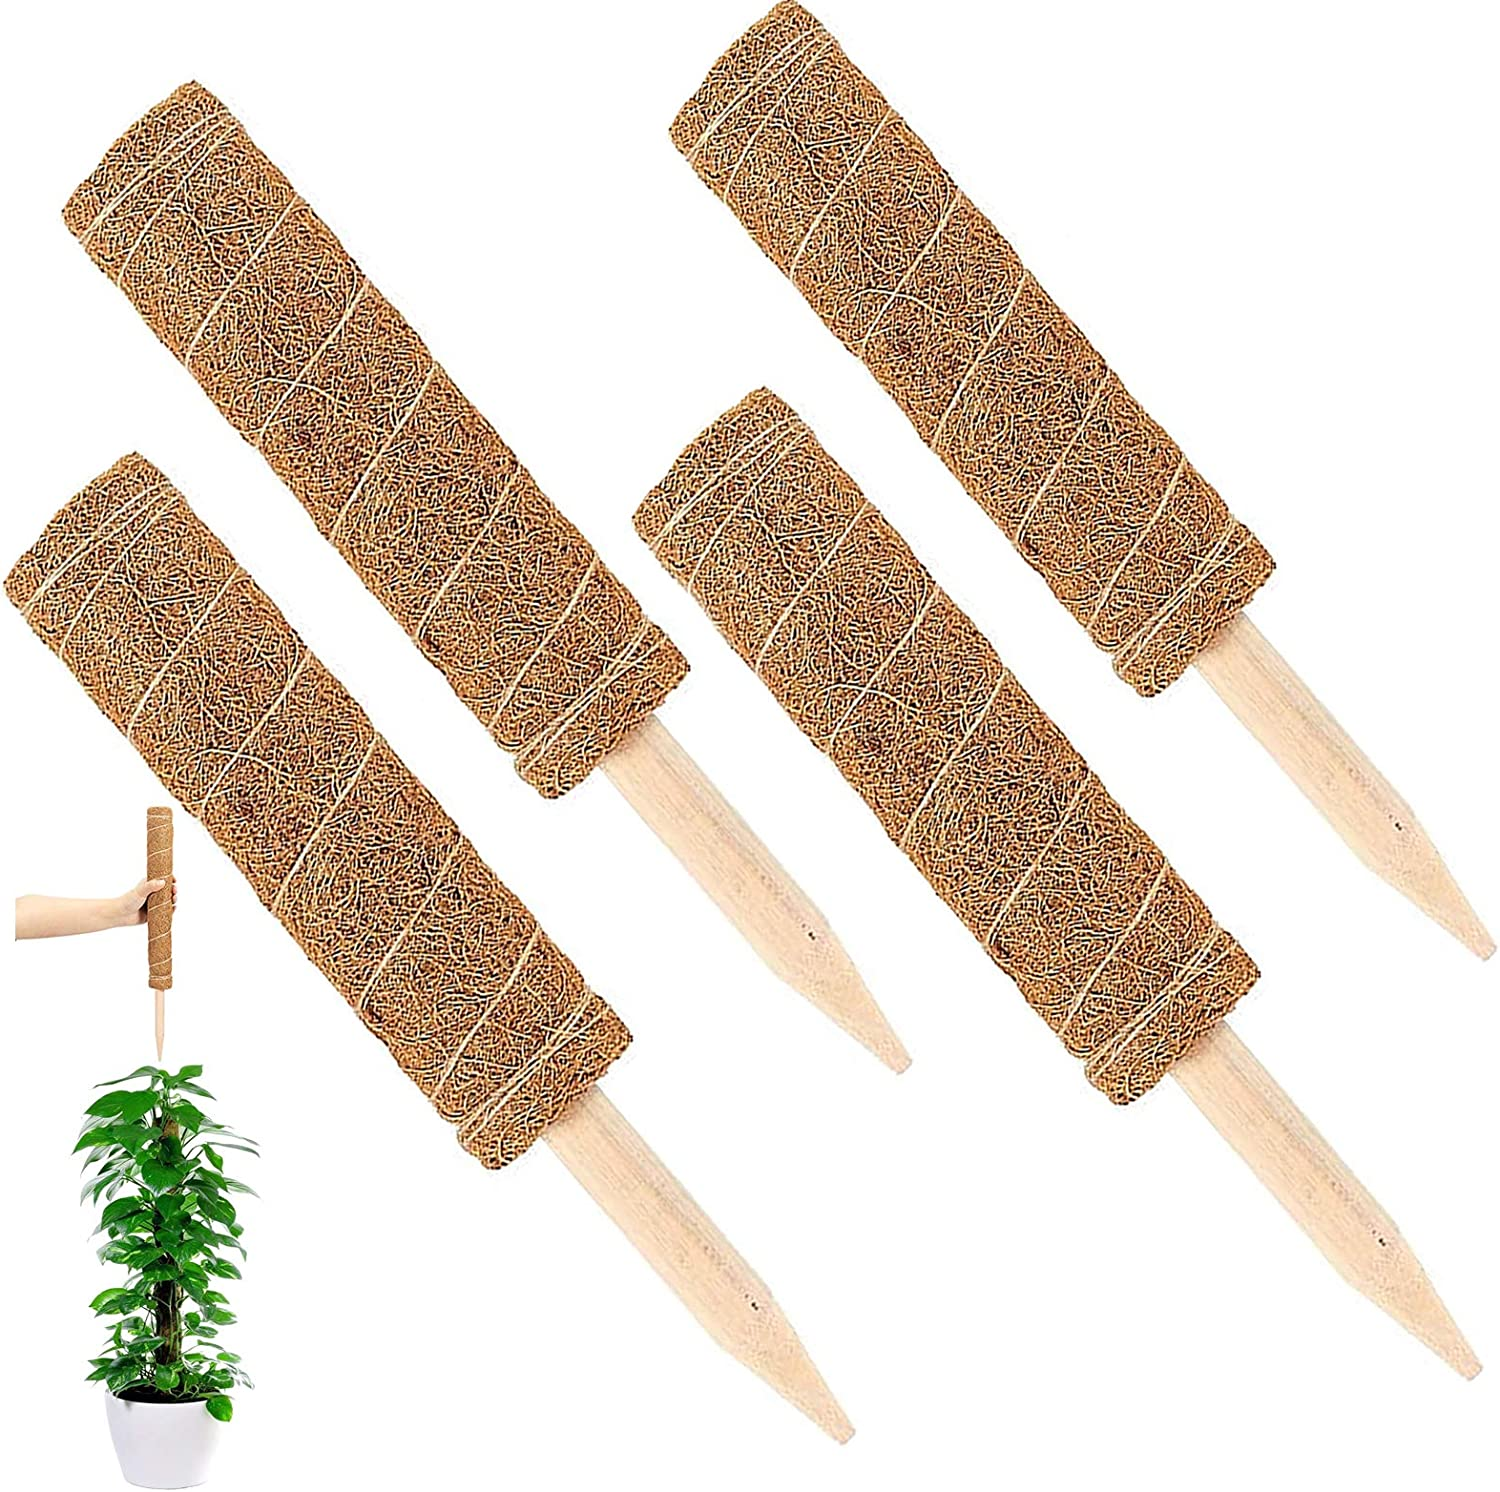 UPMCT Moss Pole Plant Superior Support 47.8 lowest price Extendable Extension Inches